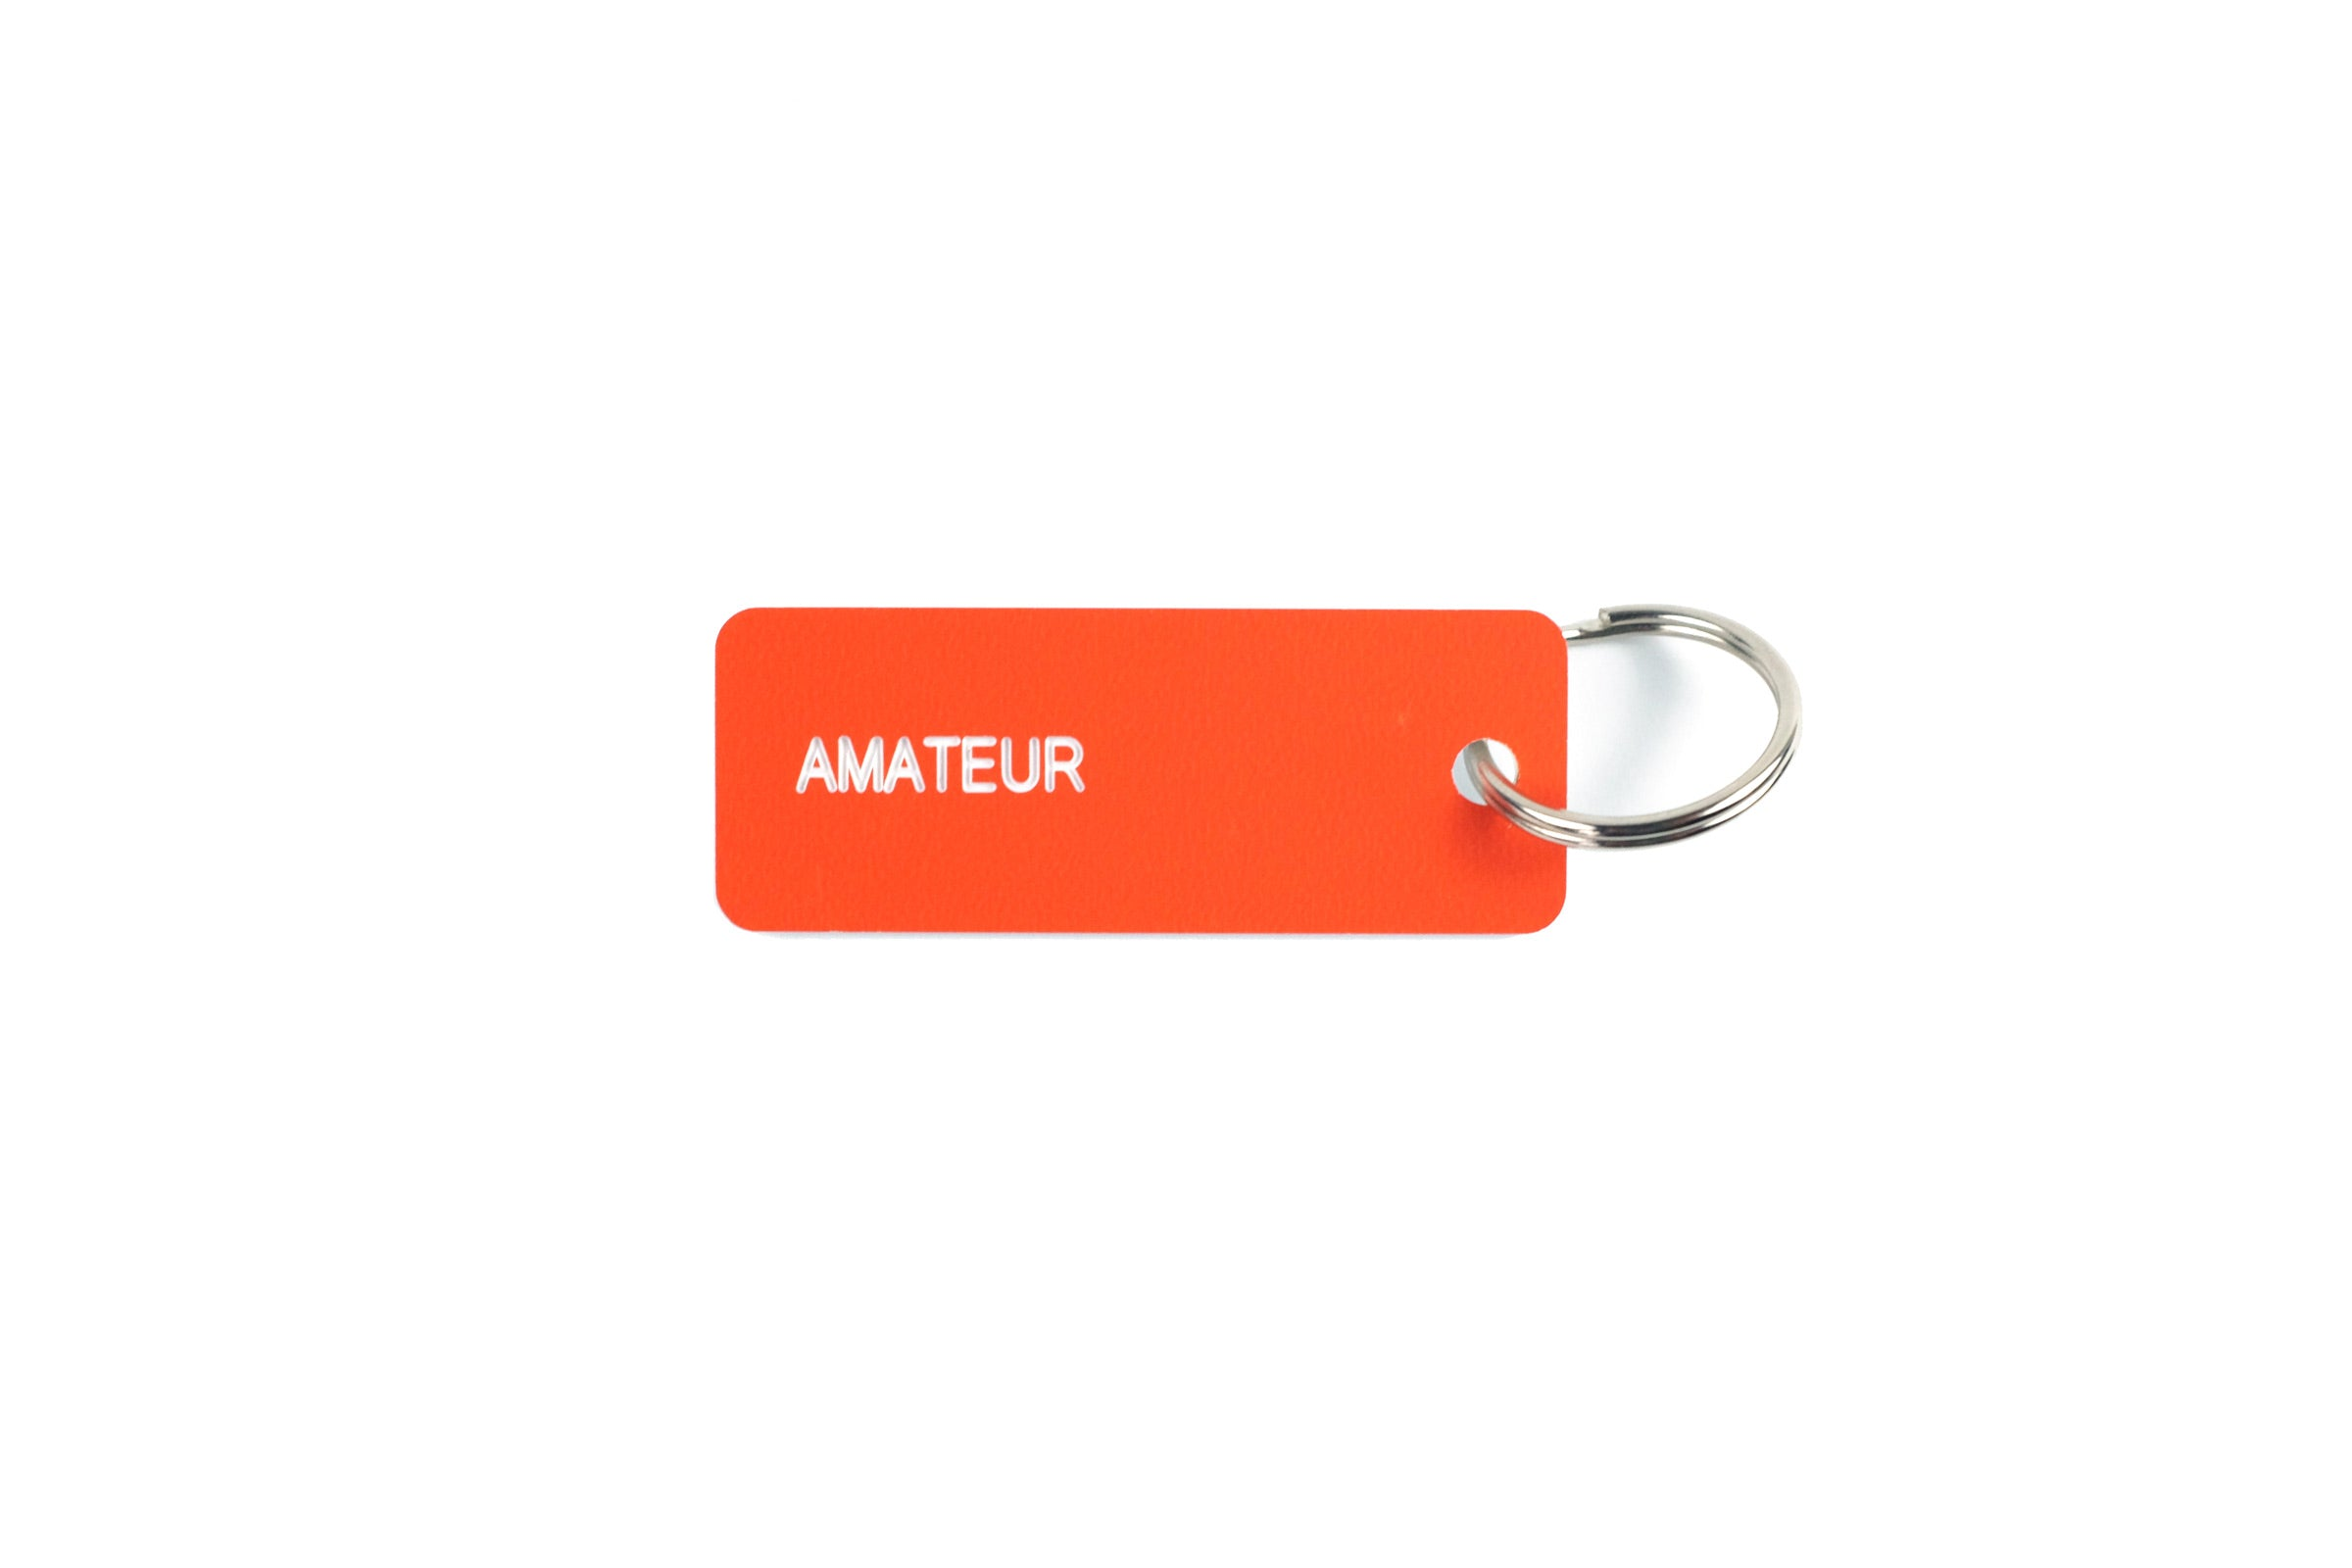 Keytag for amateur